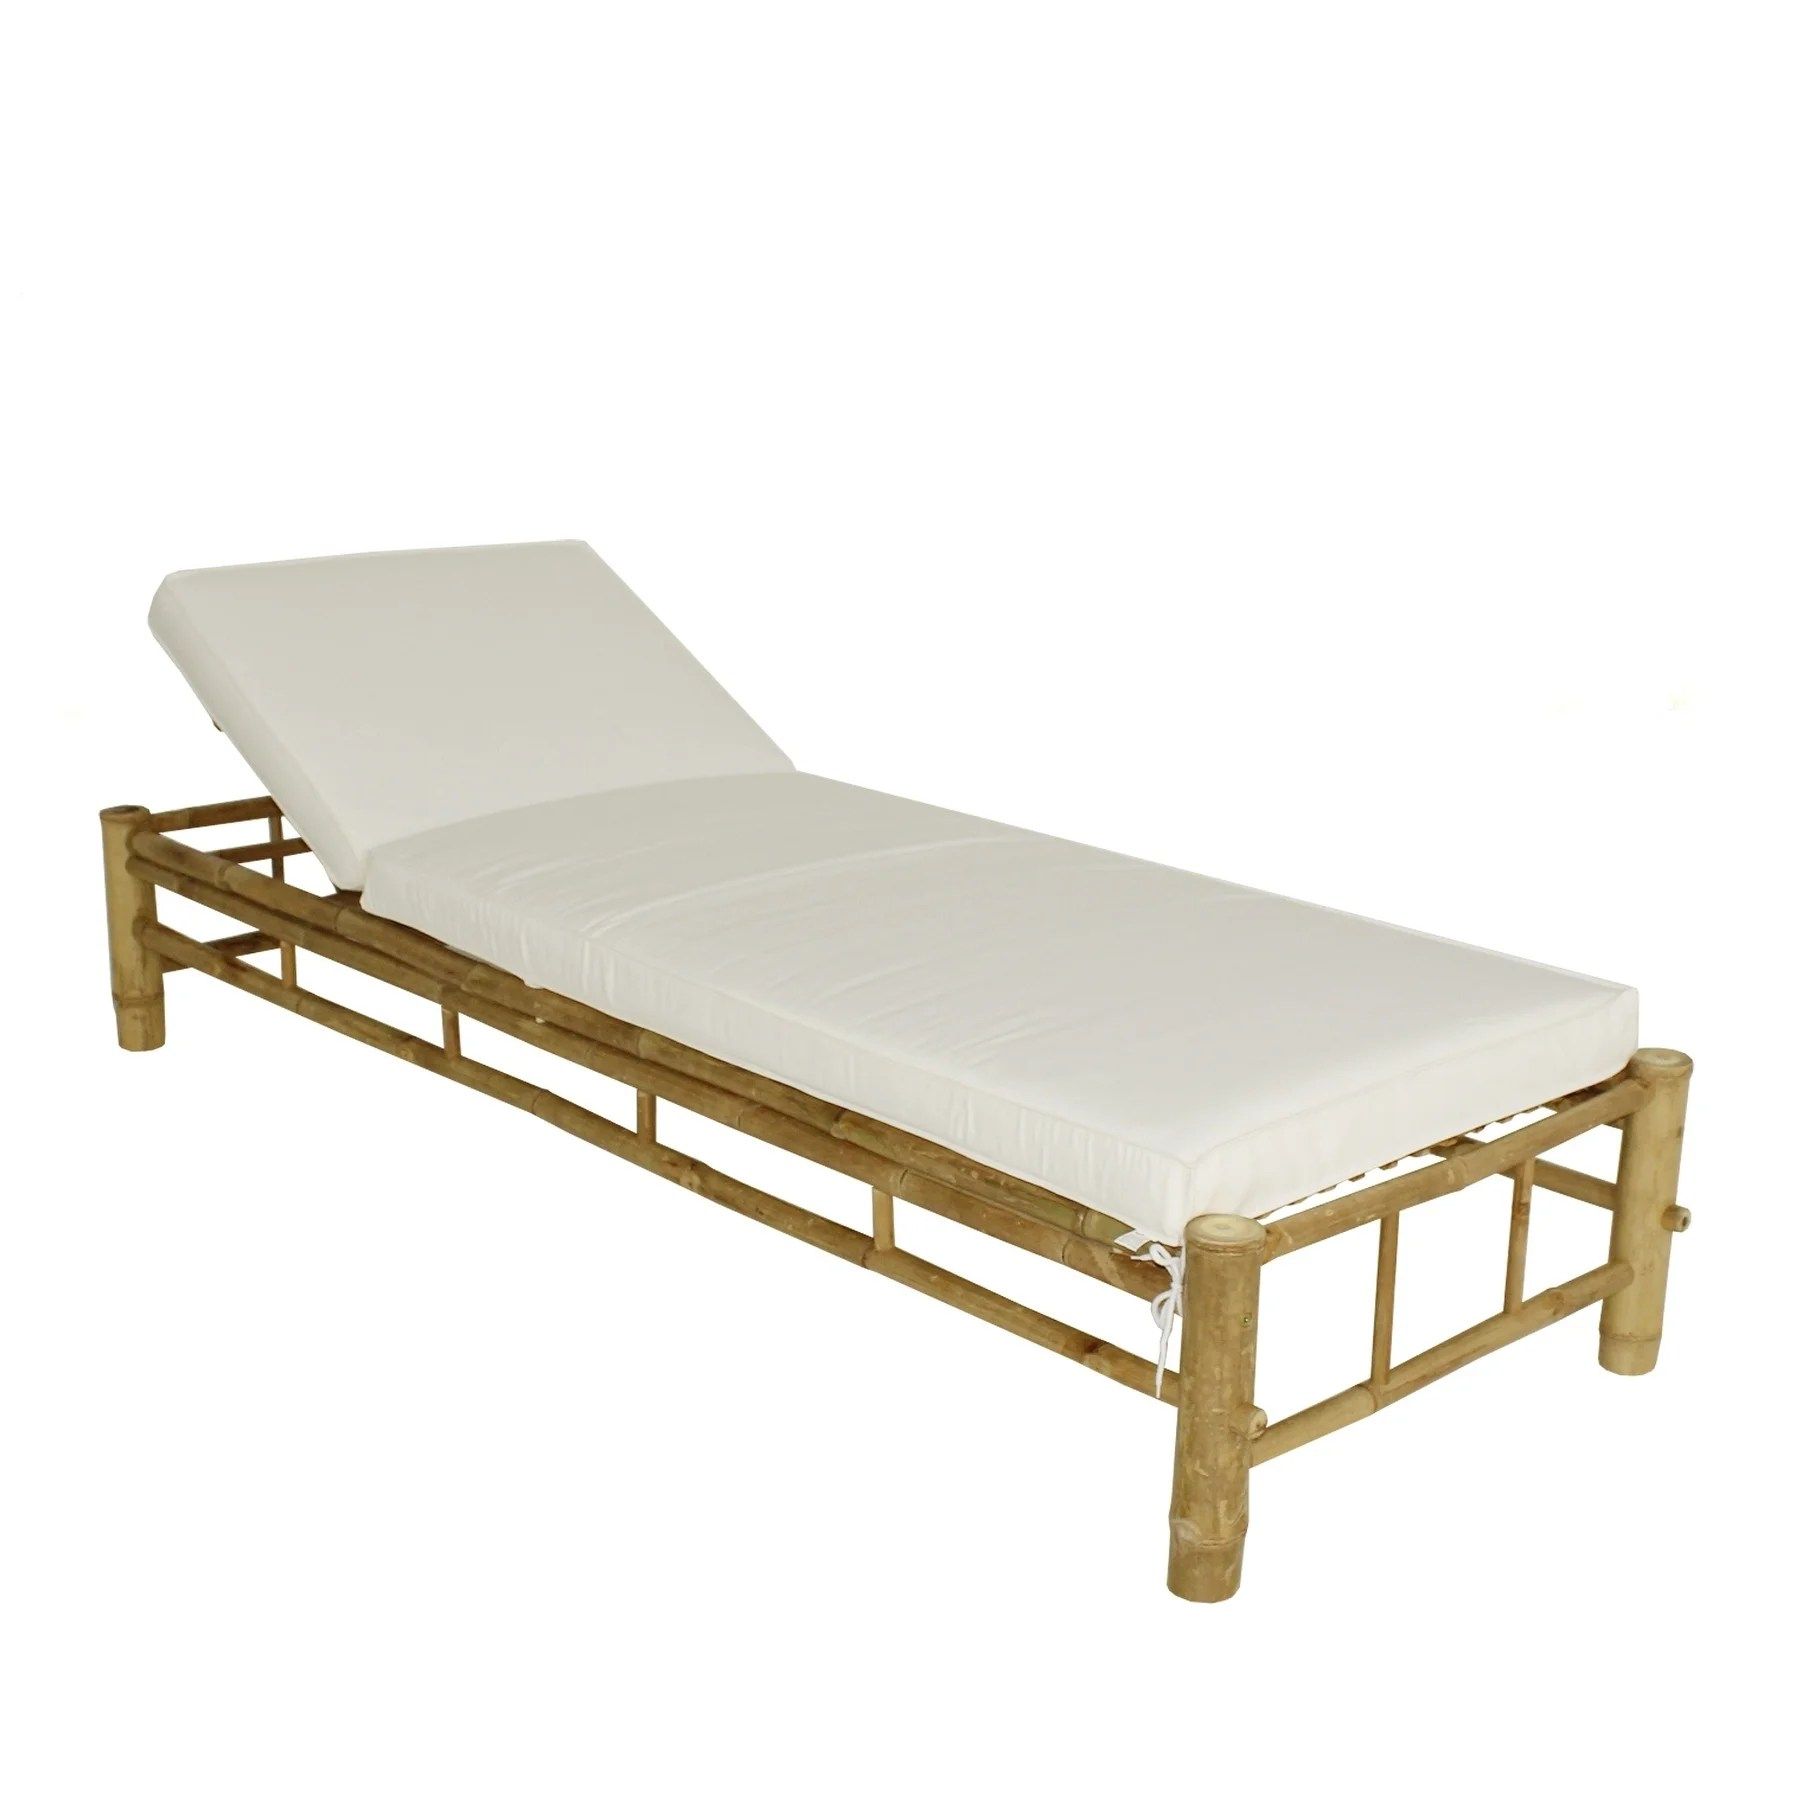 White Sun Lounge Bamboo Lounge Chair Adjustable Sun Lounger With White Mattress